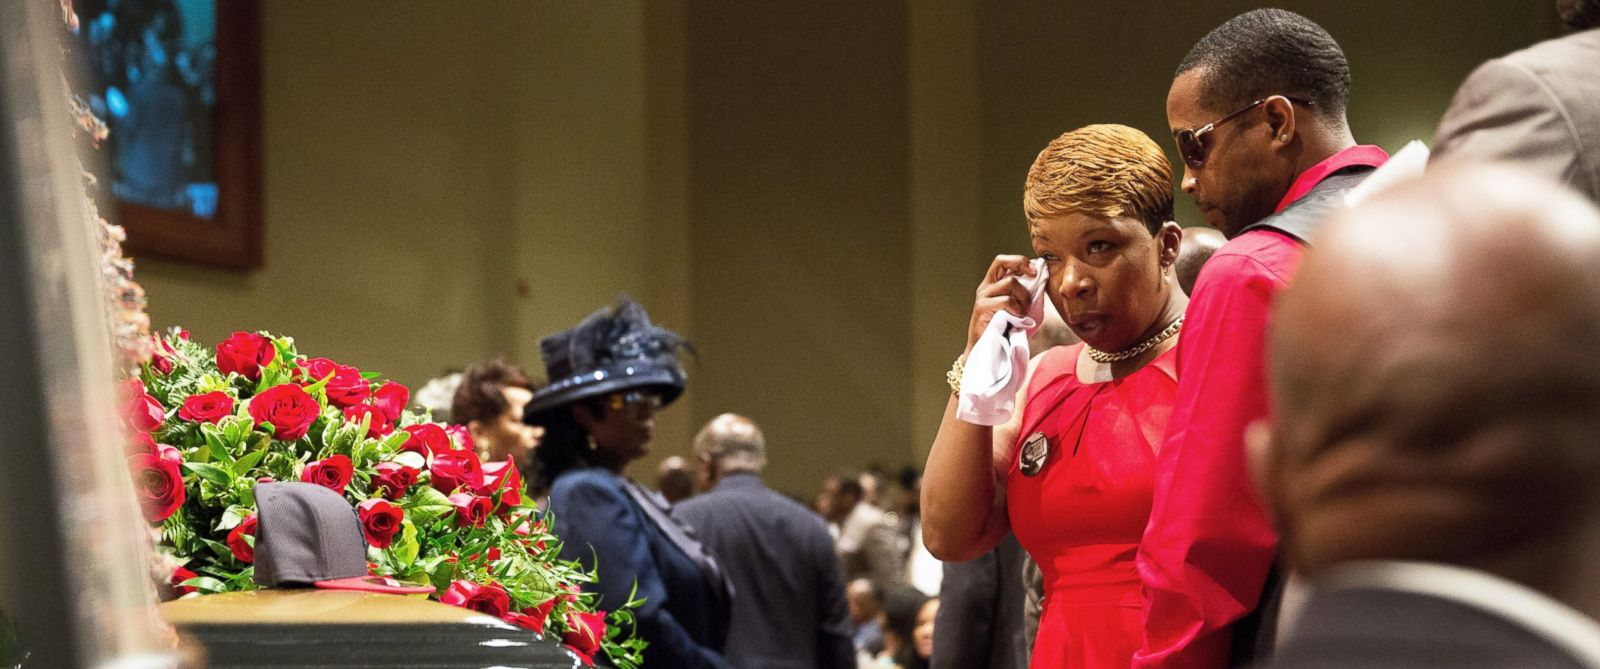 PHOTO: Lesley McSpadden stands at the casket during the funeral services for her son Michael Brown inside Friendly Temple Missionary Baptist Church on Aug. 25, 2014 in St. Louis Mo.